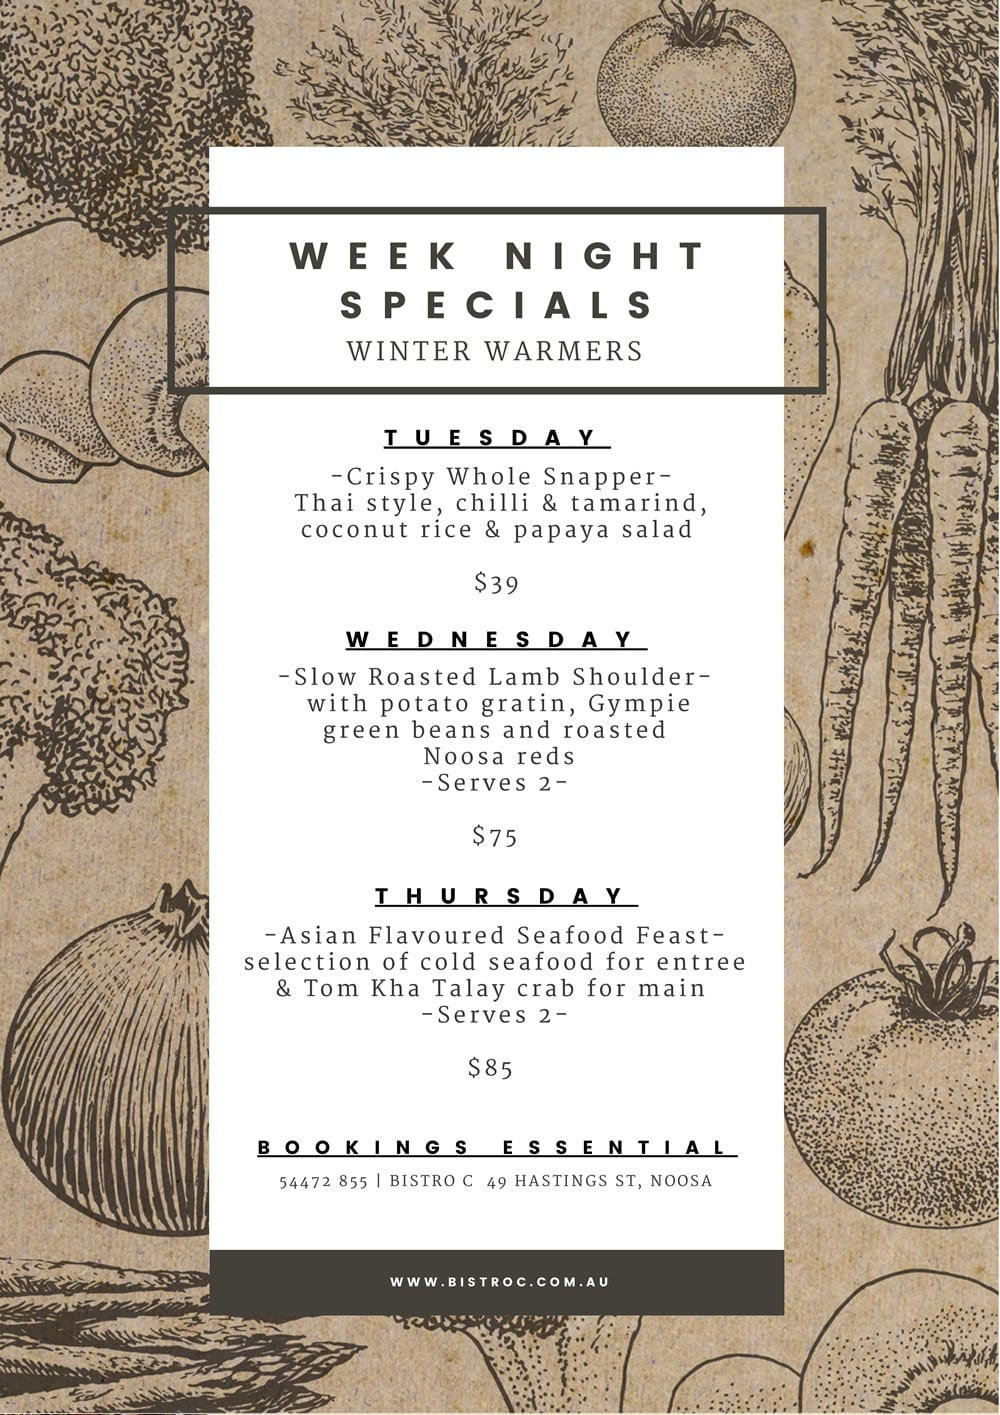 Week Night Specials Single Page 2018 06 14